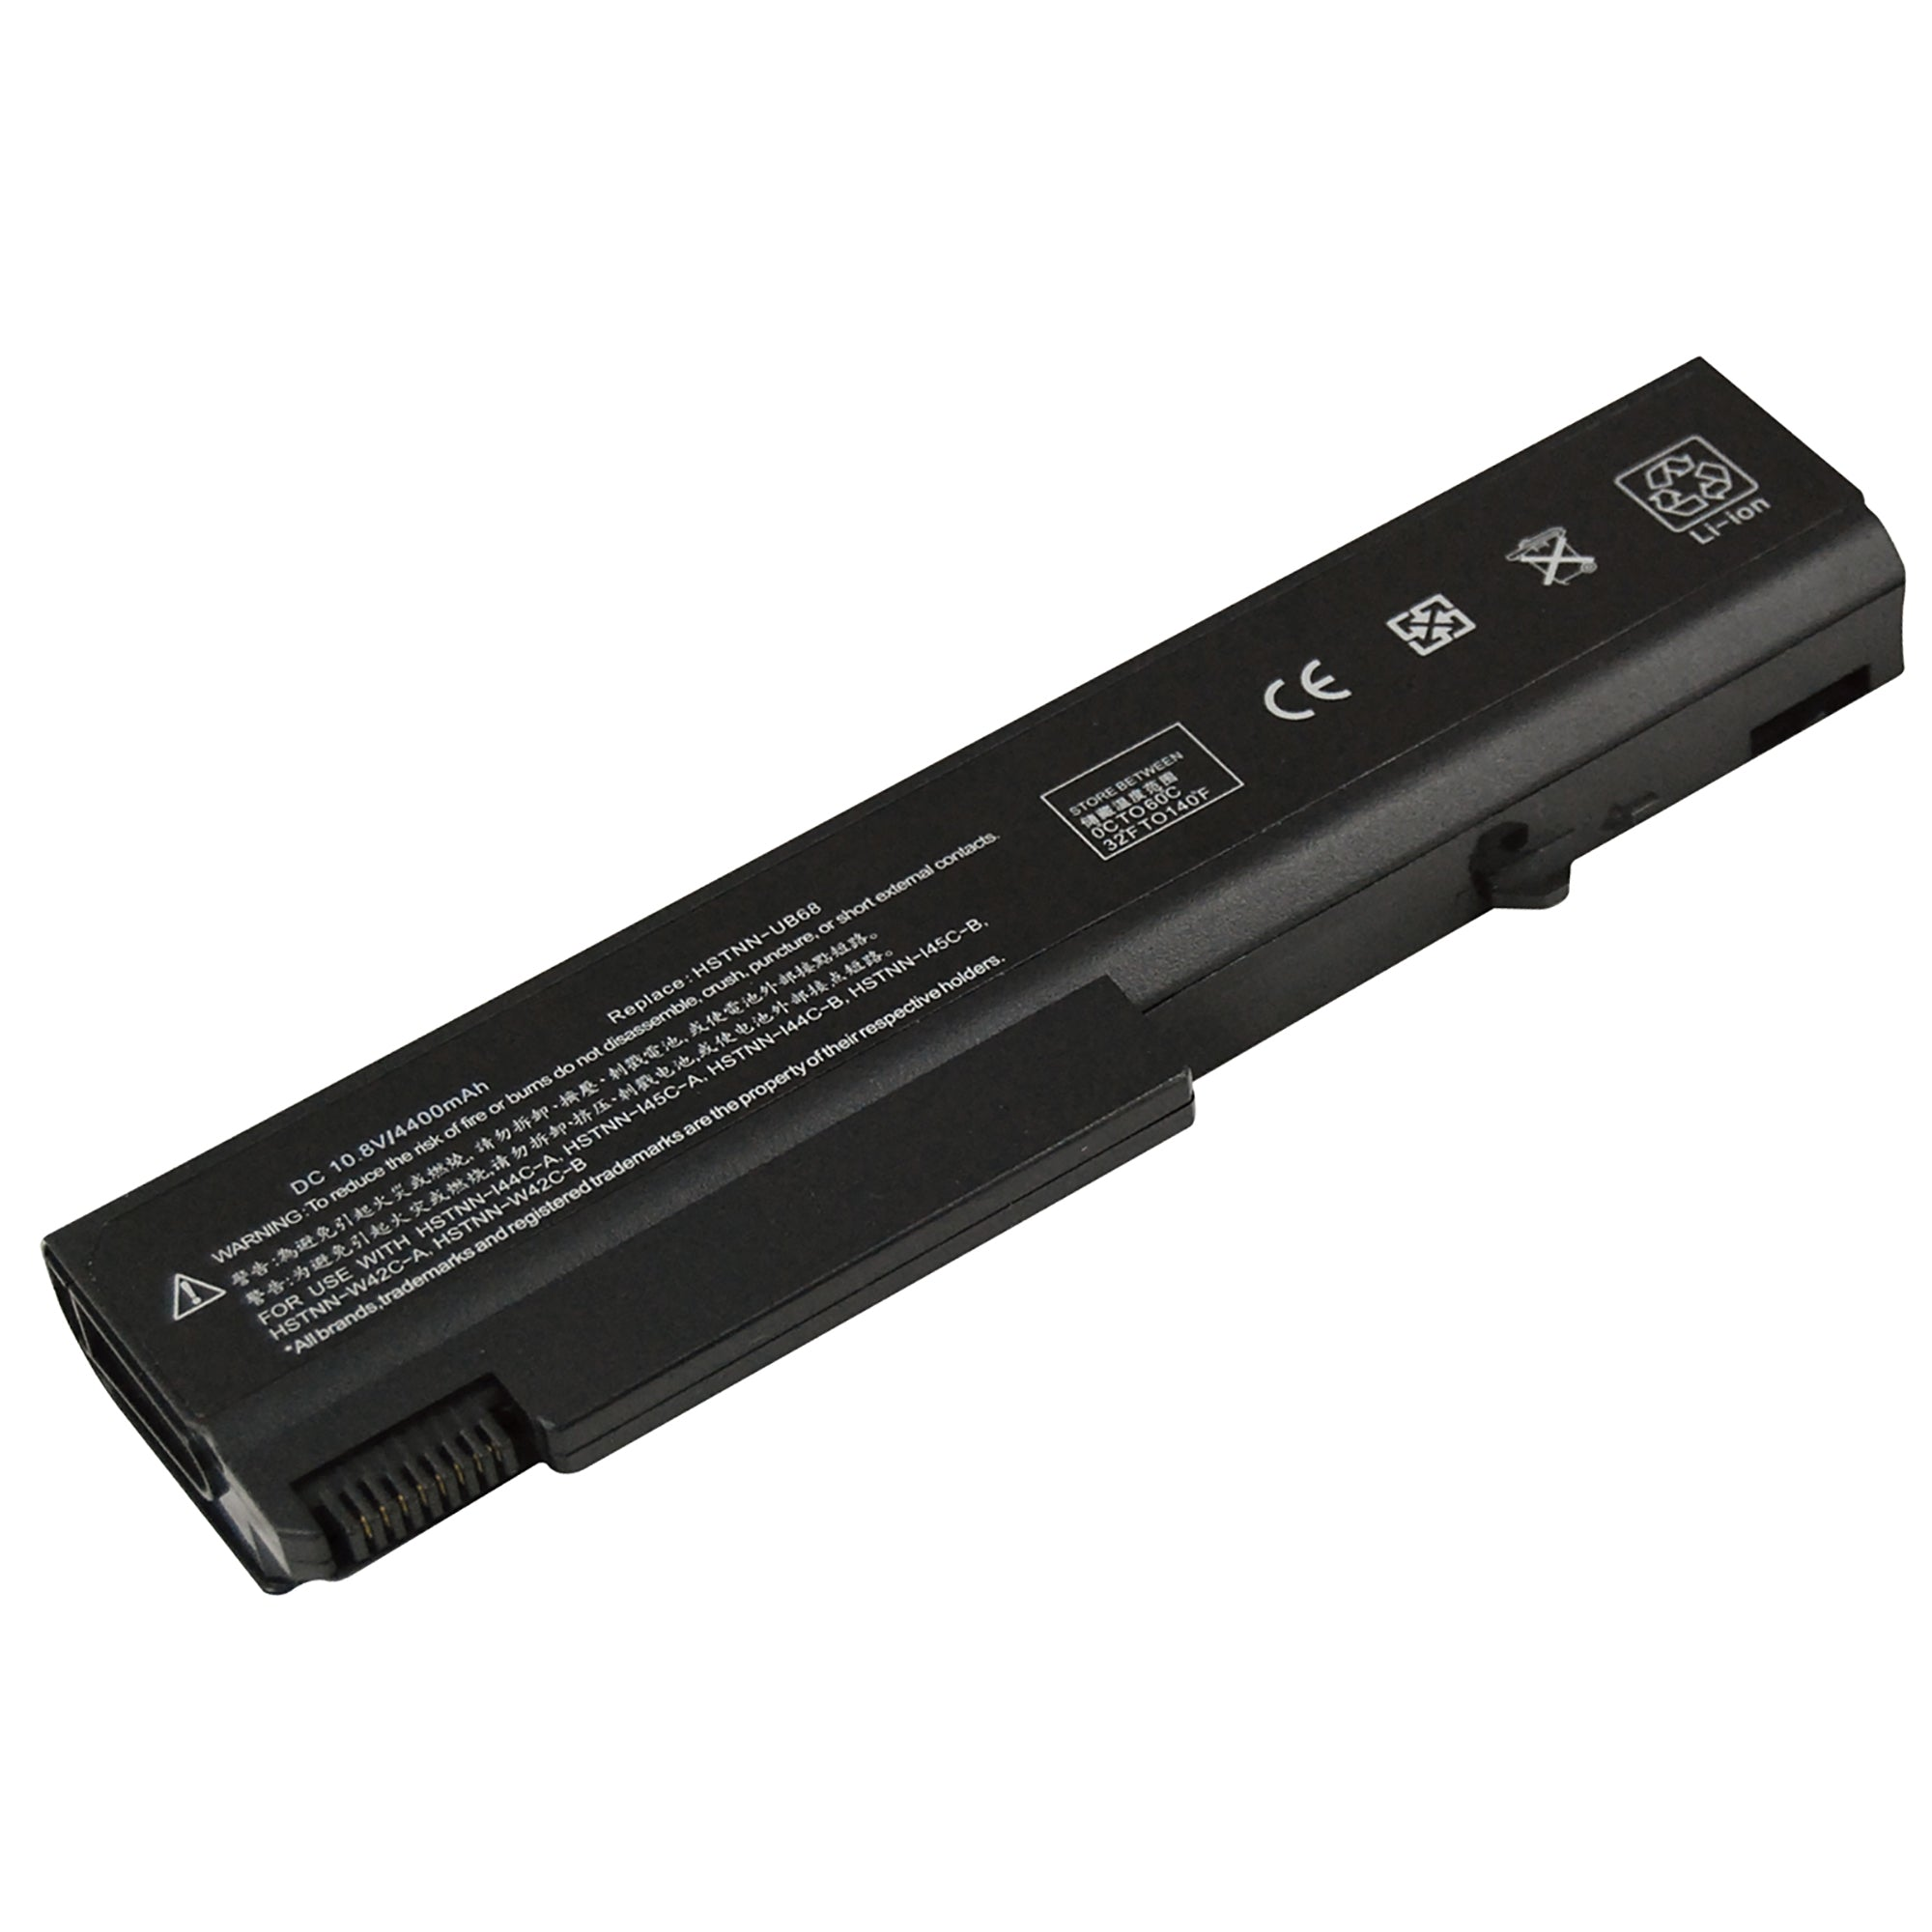 HP HSTNN-UB68 458640-542 484786-001 4400mAh 6 Cell Battery